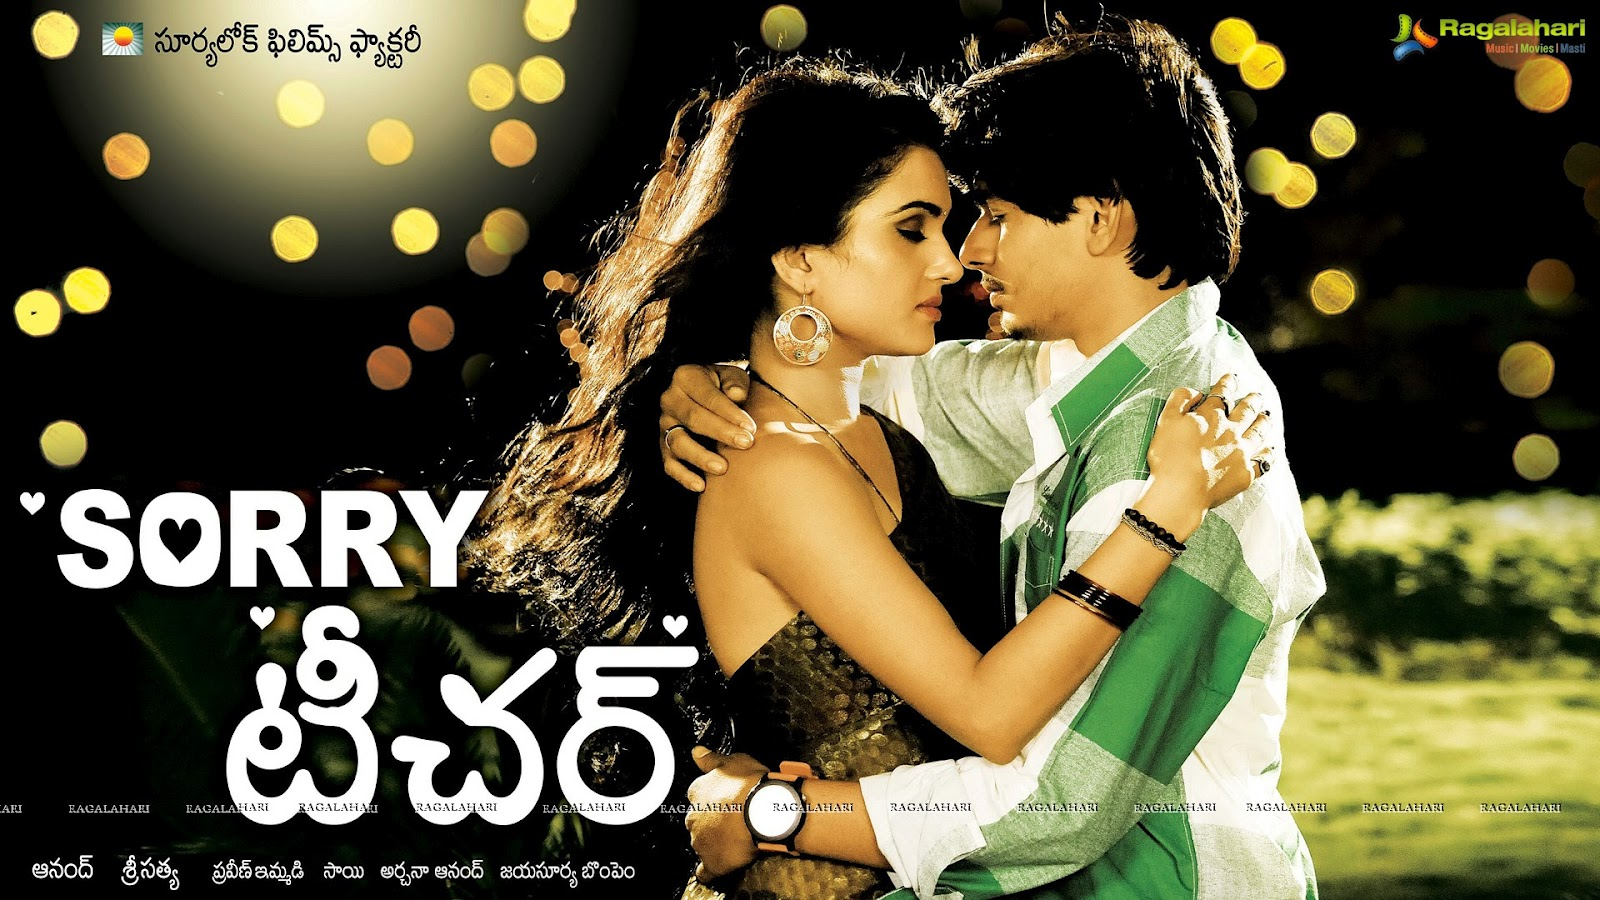 Pavitra bandham old telugu movie mp3 songs free download.